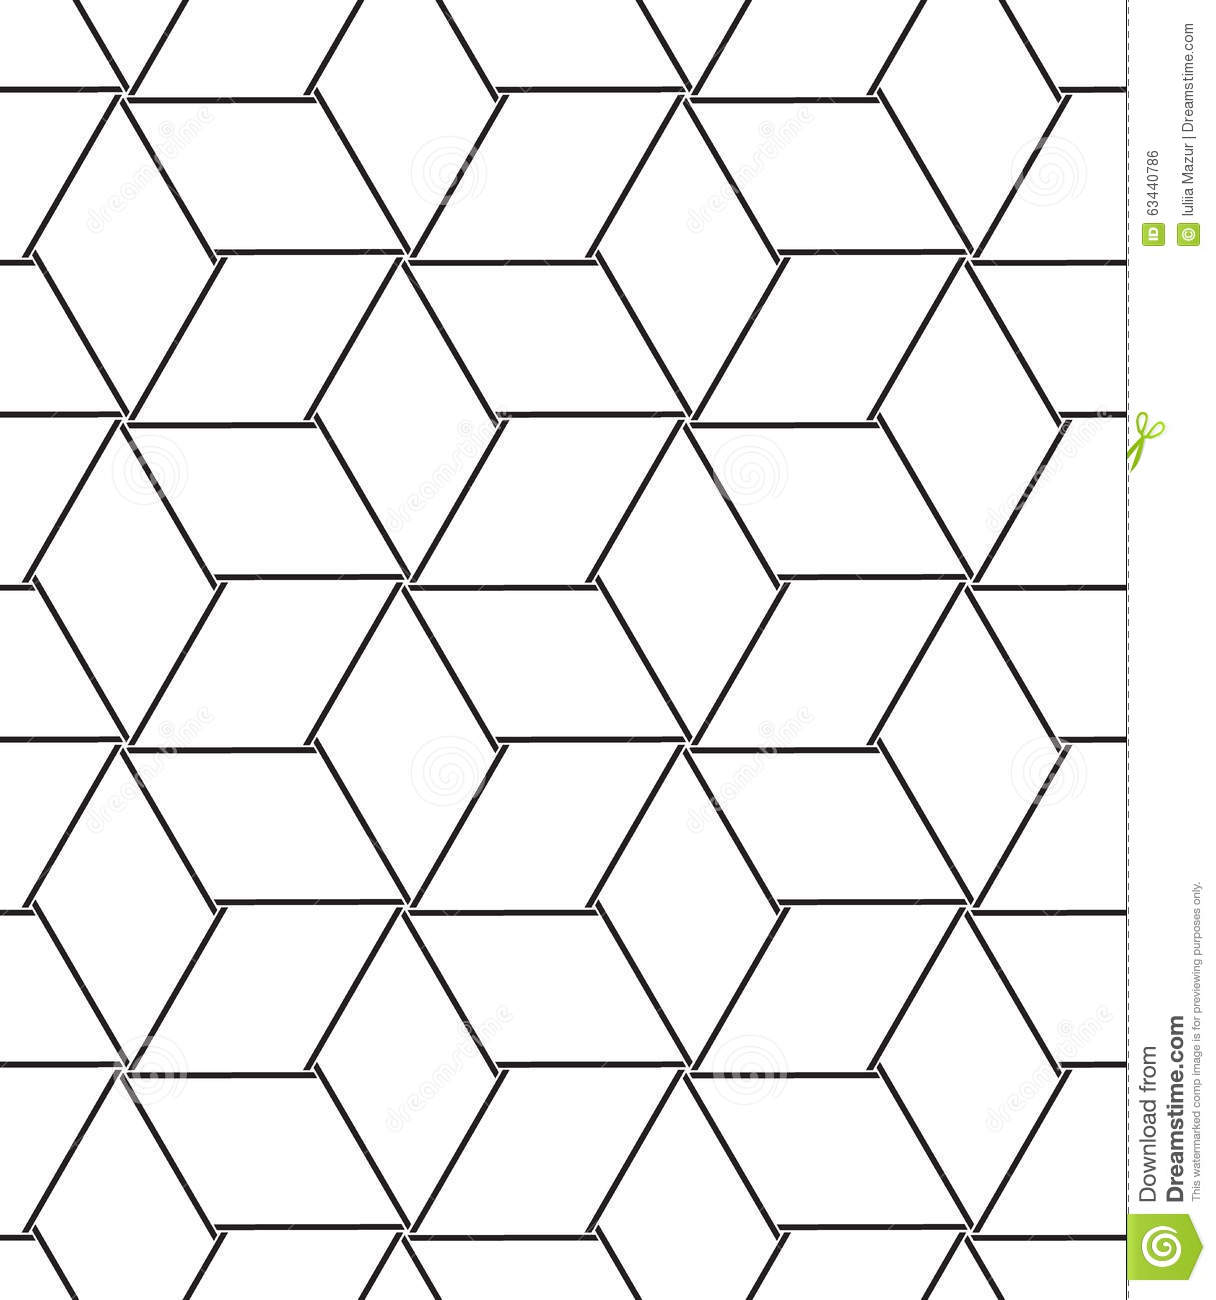 Geometric Line Design Patterns : Vector seamless pattern modern line geometric background